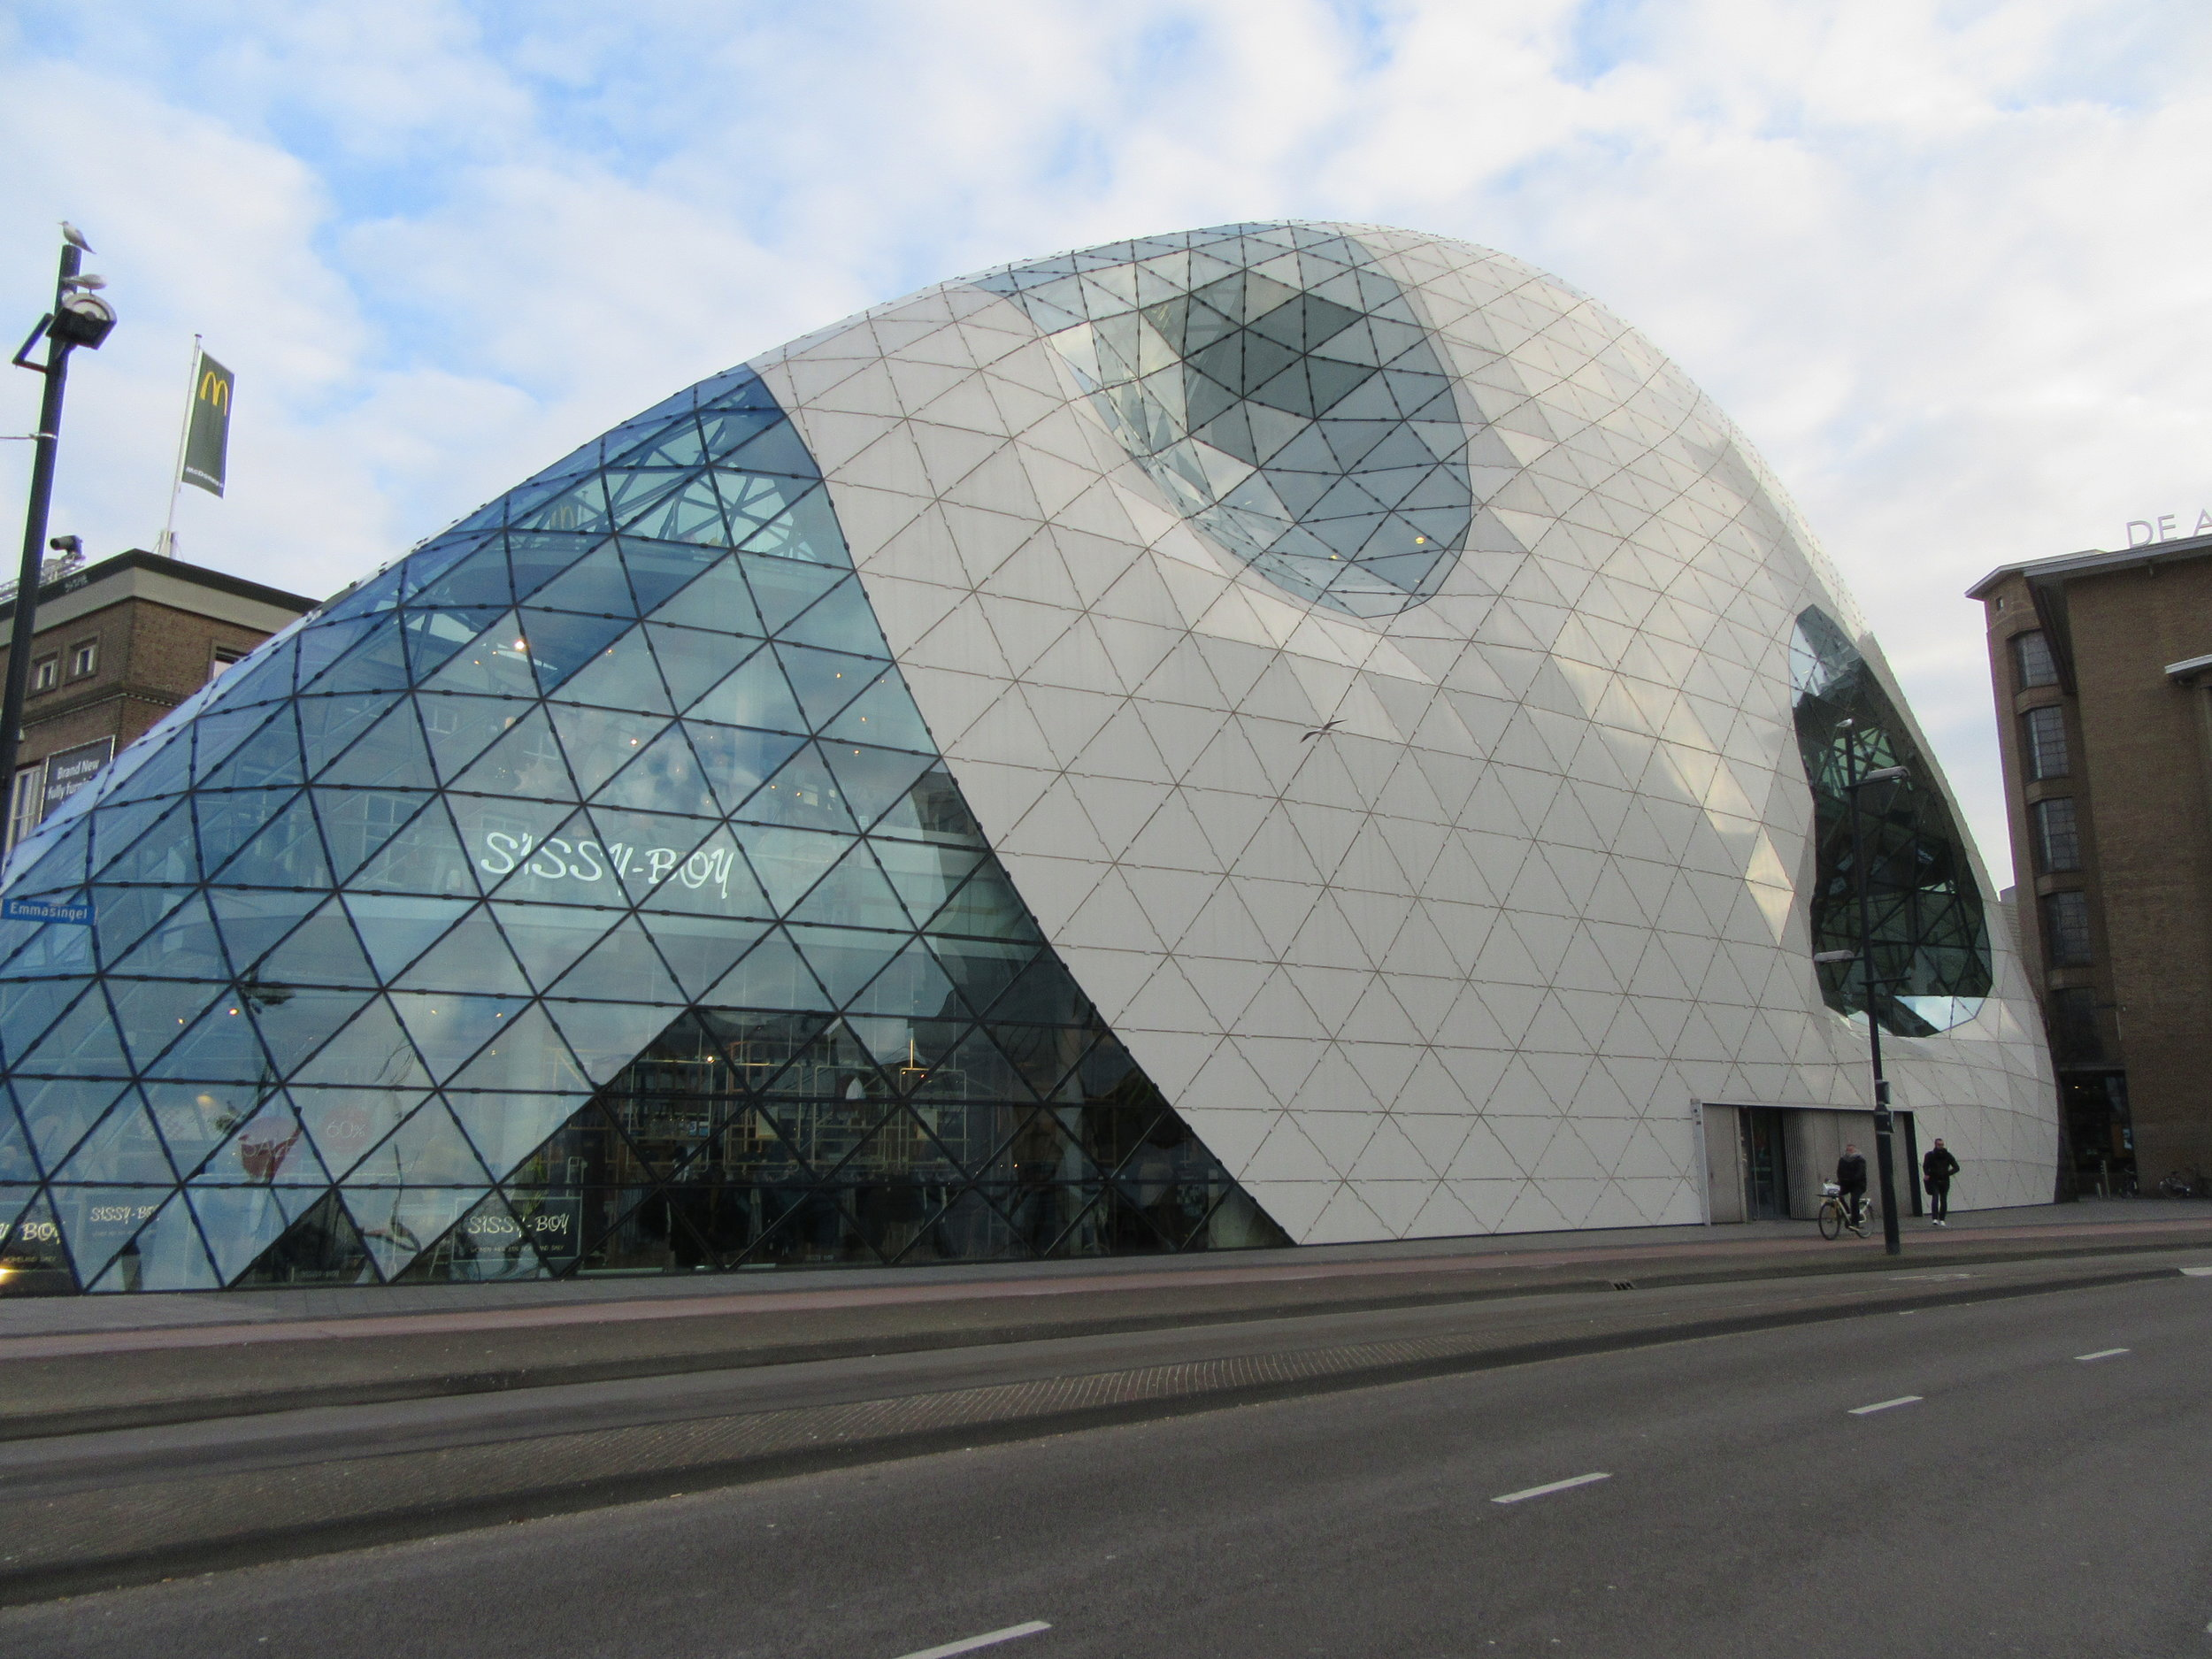 De Blob - one of Eindhoven's architectural attractions.